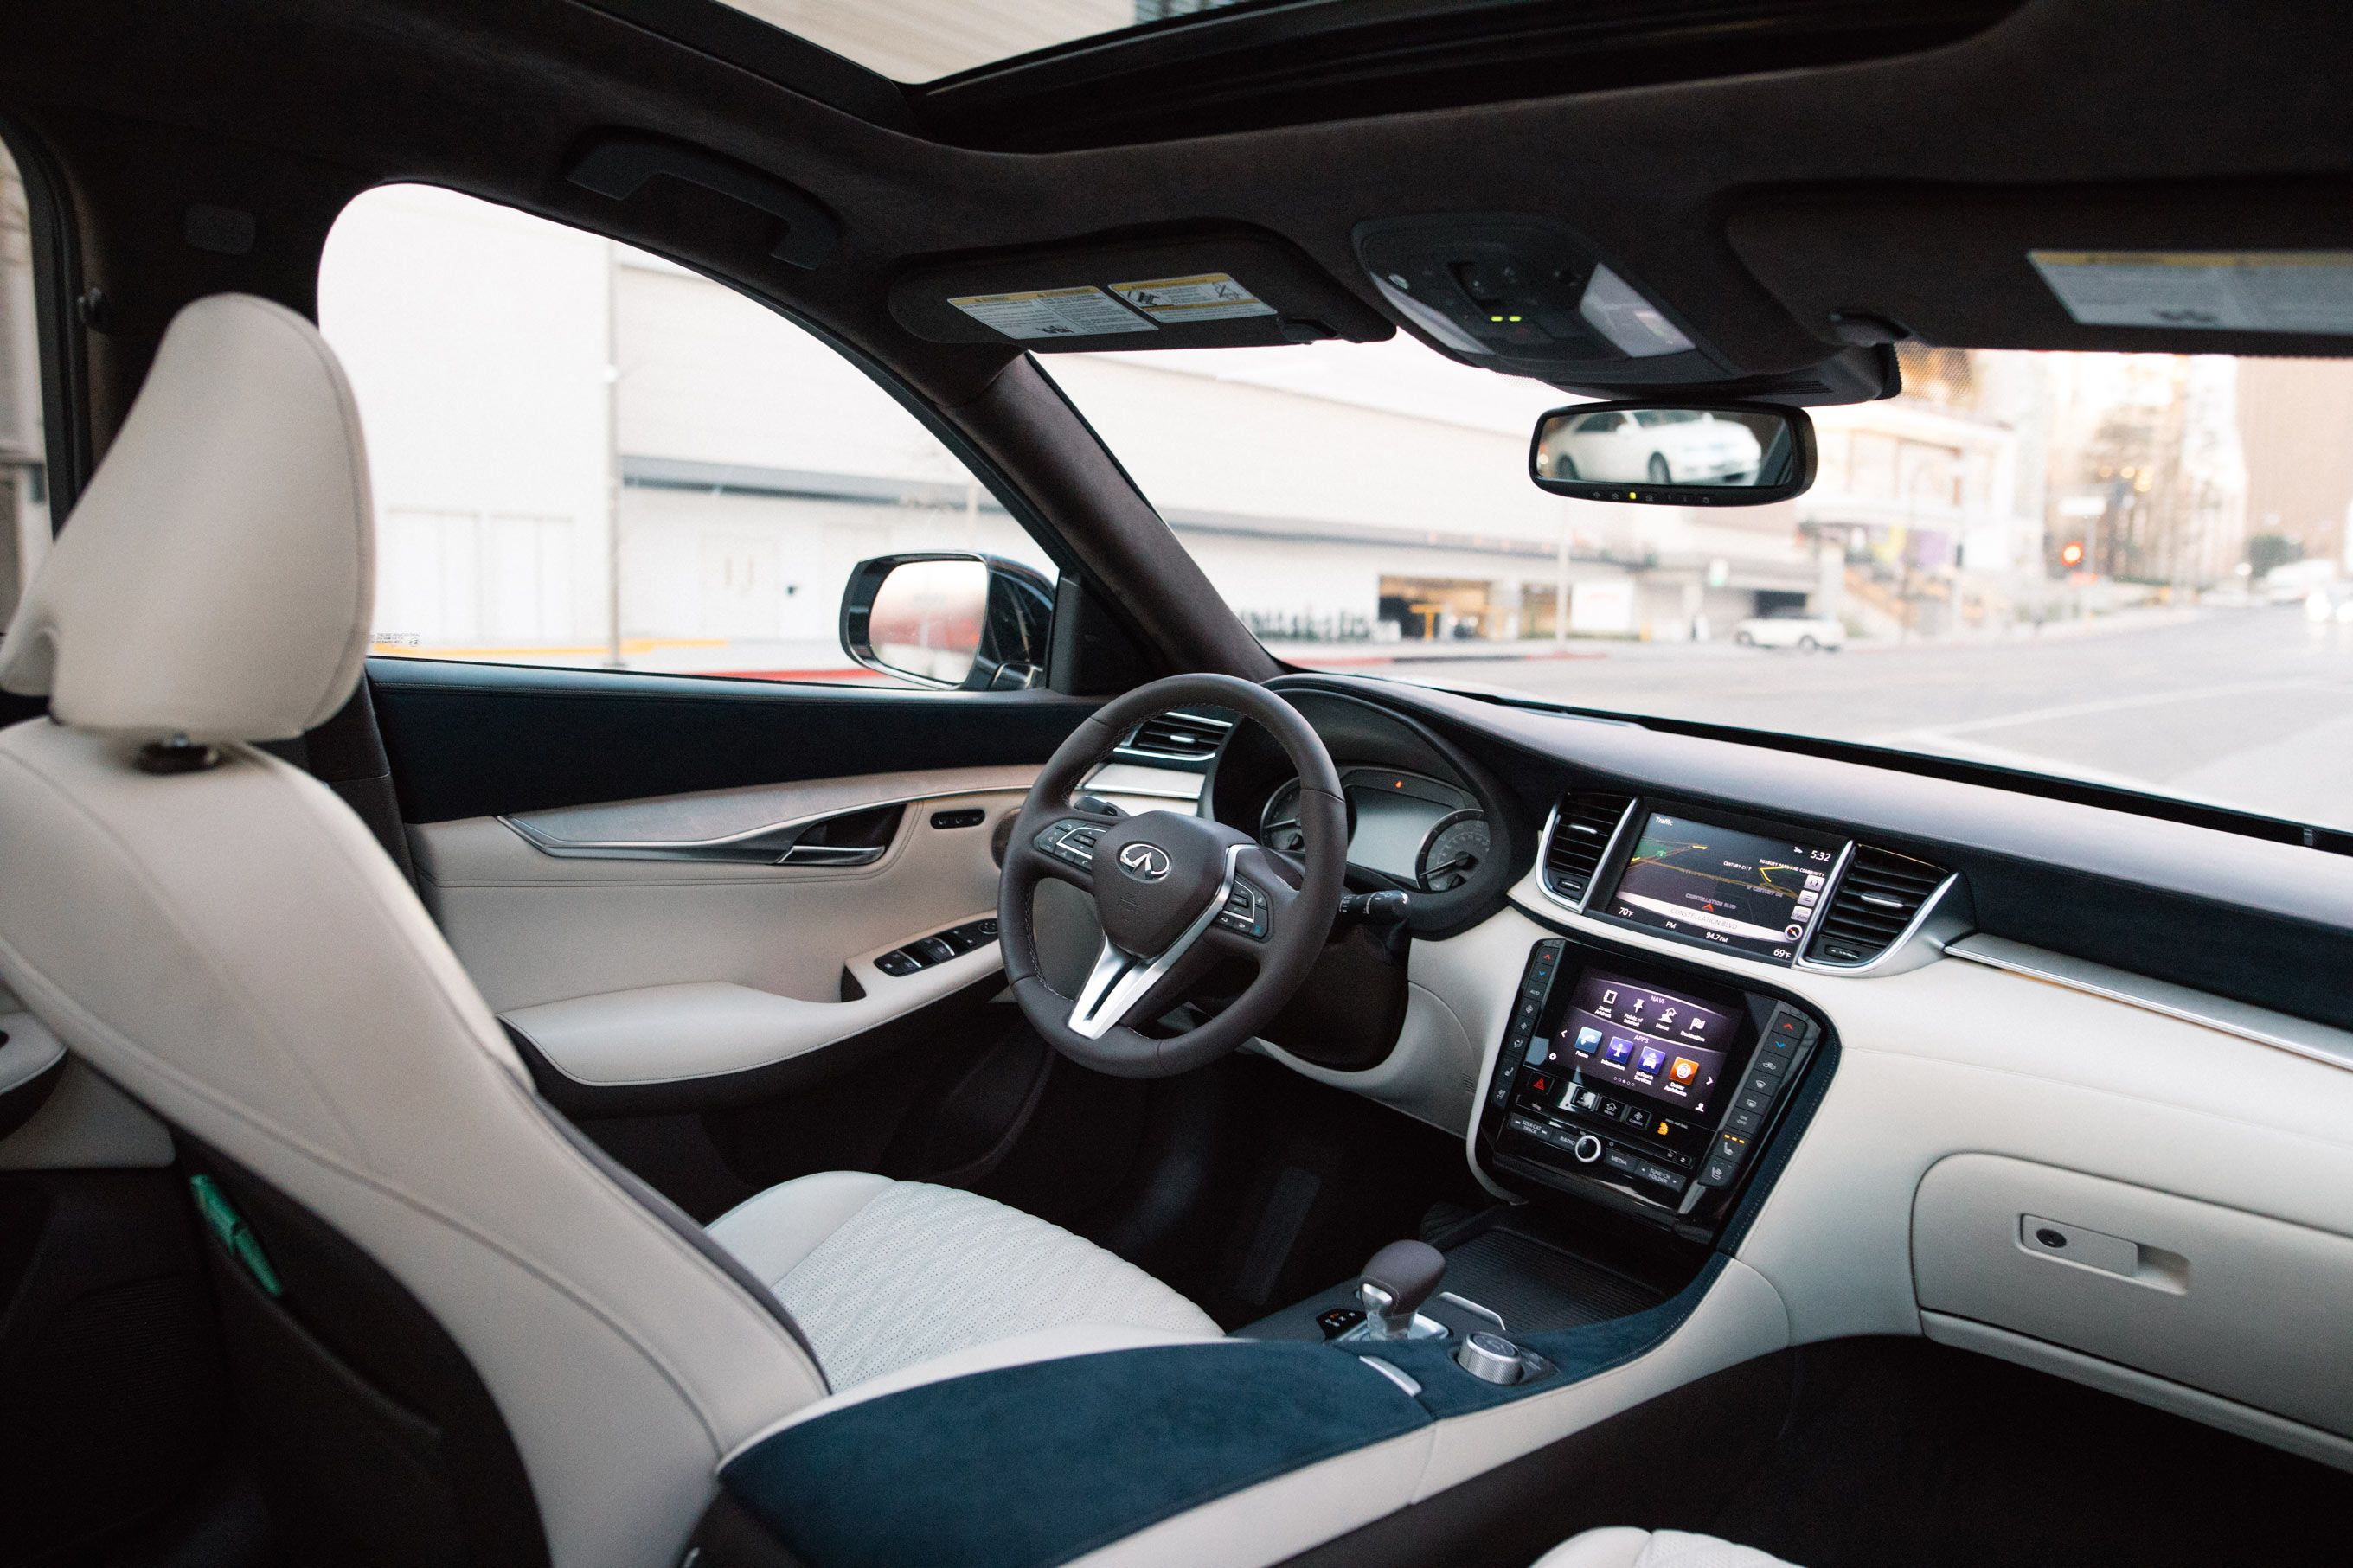 The All New Infiniti Qx50 Take A Seat And Experience The Journey Within Awarded One Of Wards 10 Best Interiors New Infiniti Luxury Crossovers Infiniti Usa